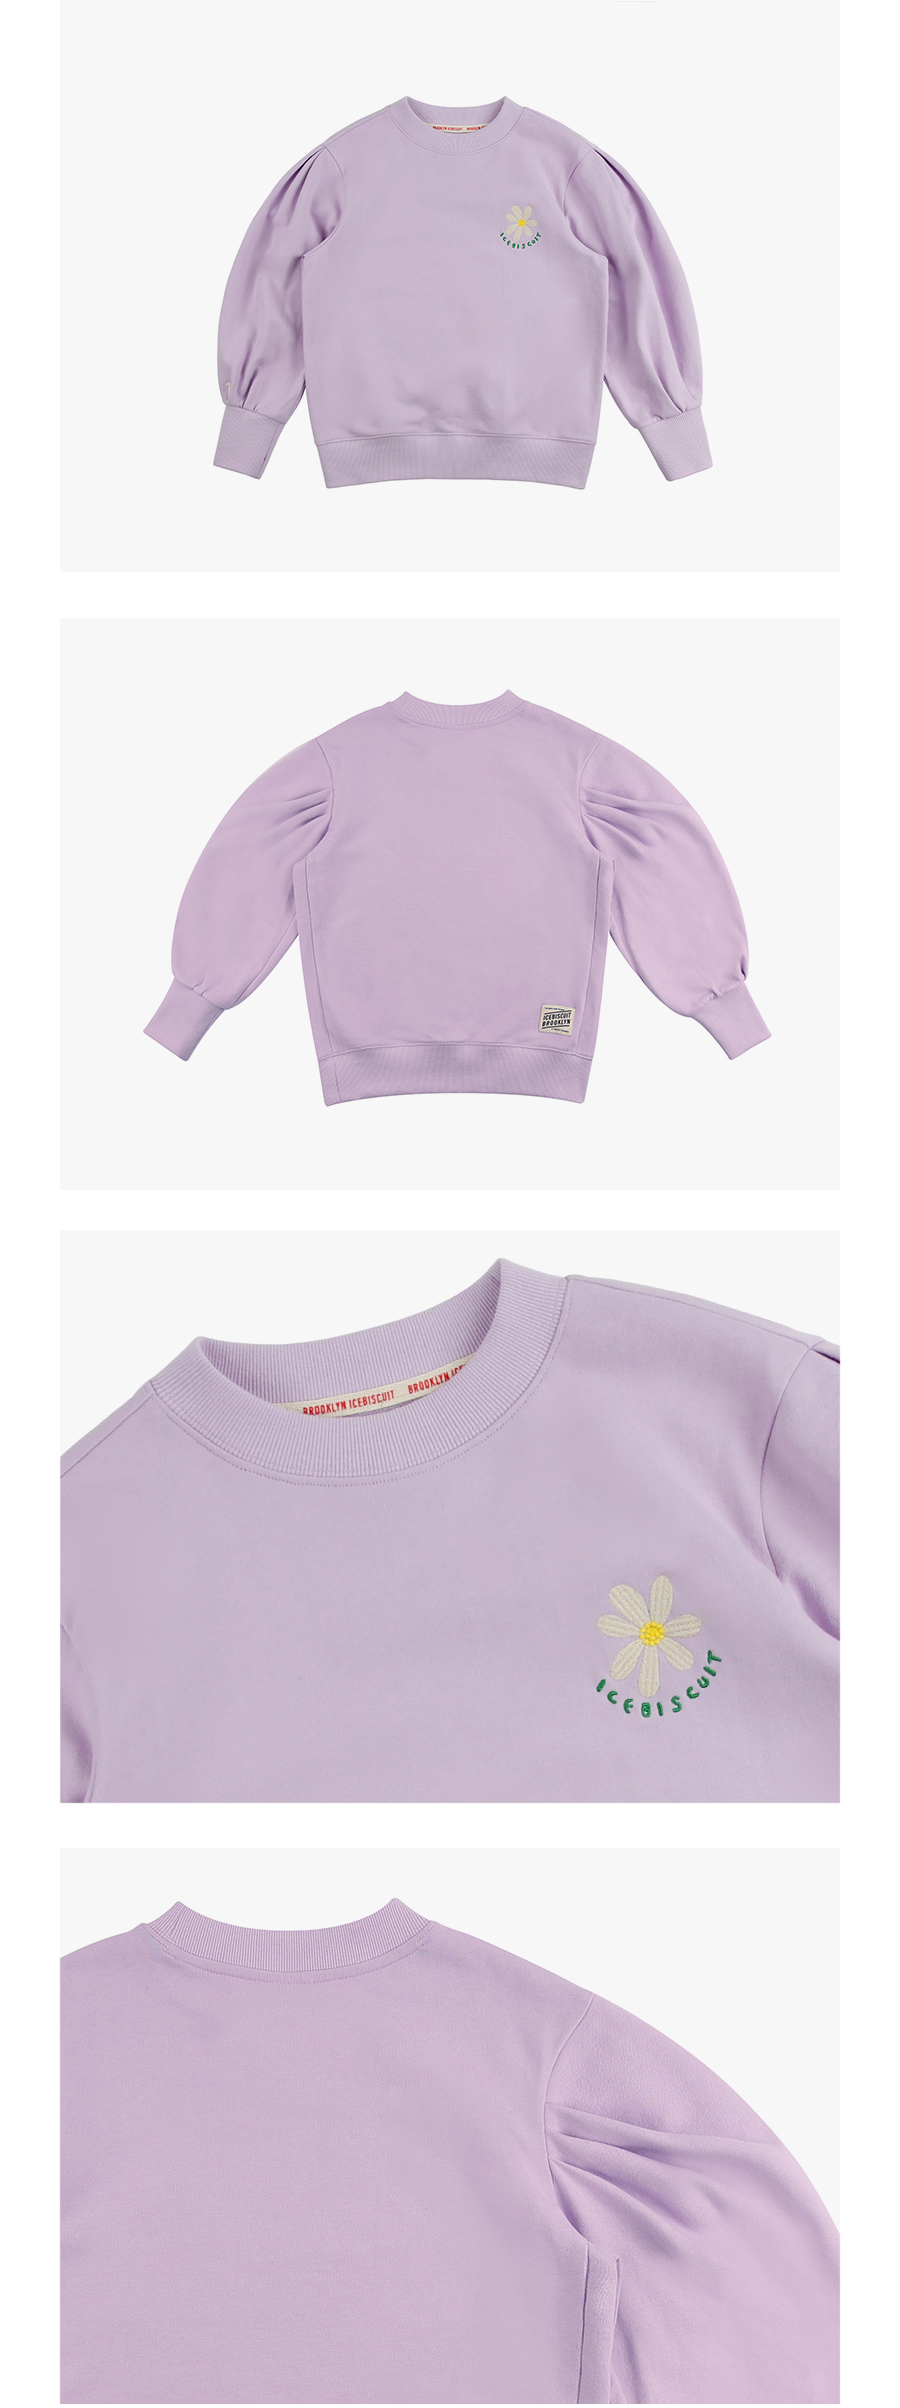 Daisy balloon sleeve sweatshirt 상세 이미지